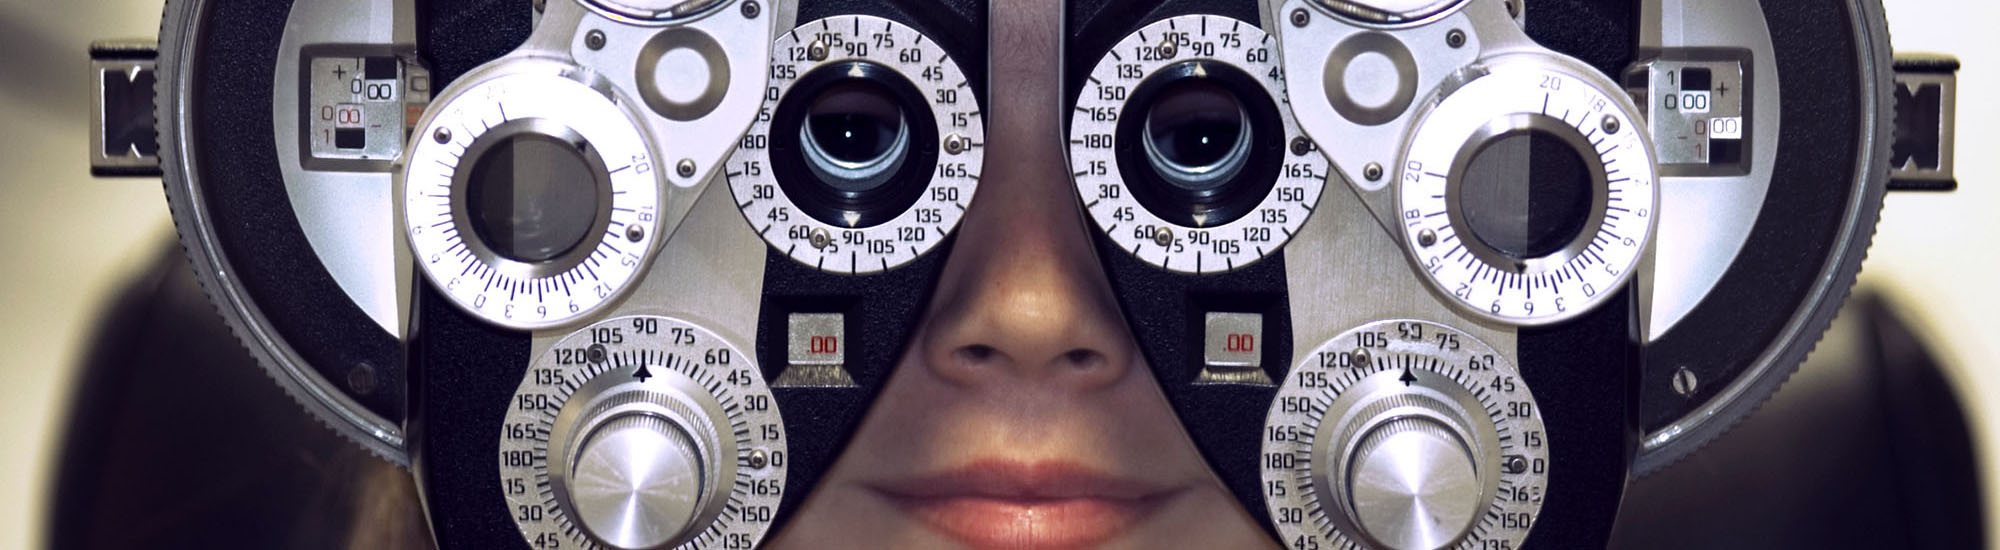 Comprehensive Eye Exams by Vestavia Eye Care